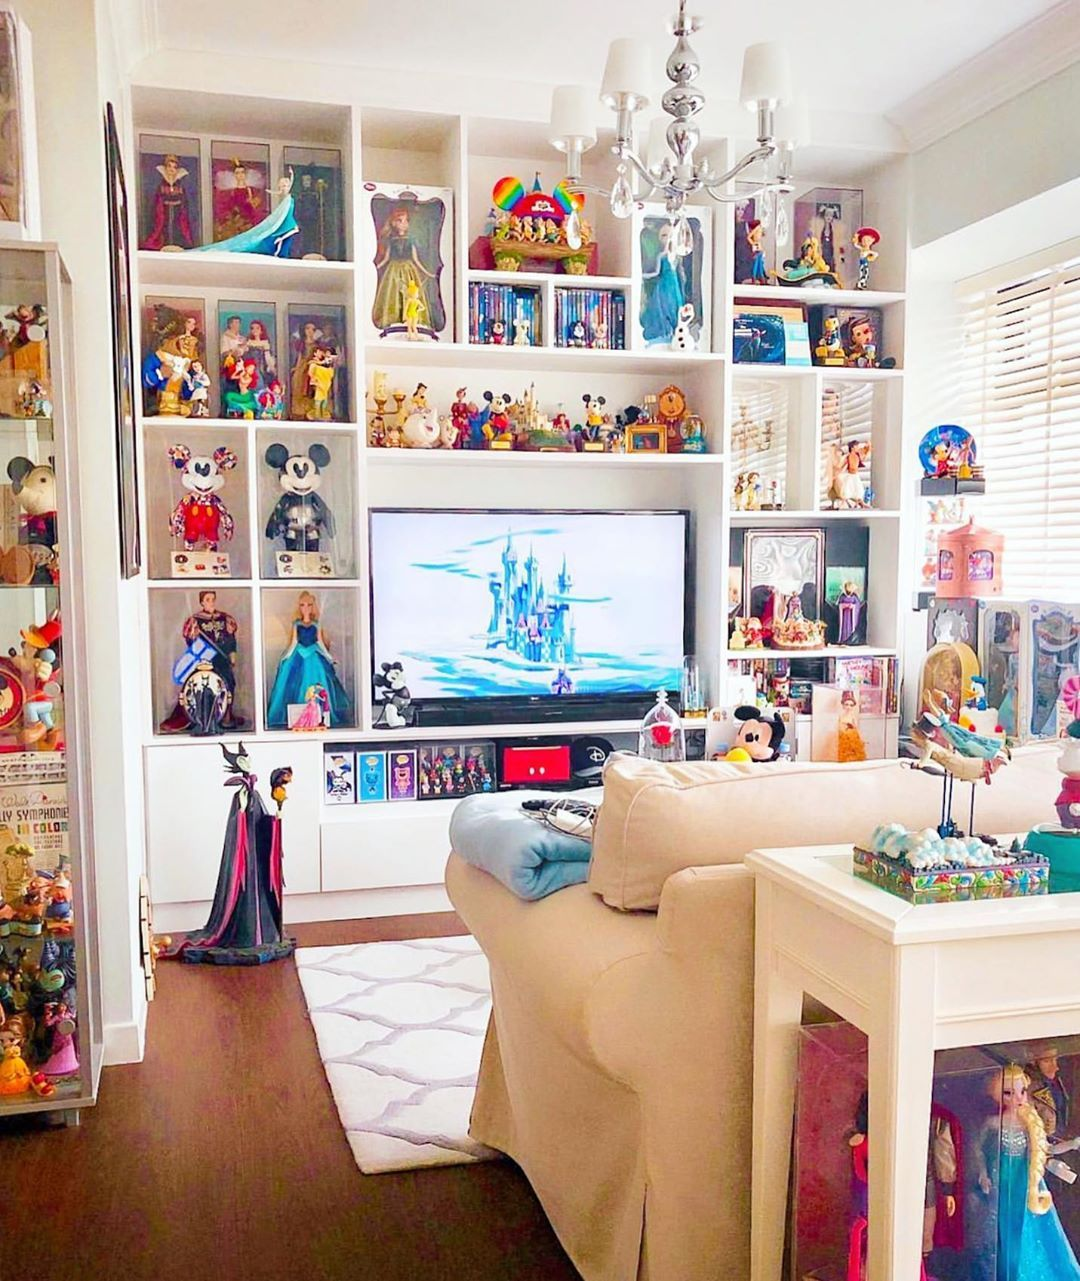 "Disney At Home on Instagram: ""Our friend @davdaf has such a magical living room! An amazing collection of Disney to surround you while you lounge with Disney movies,…"""